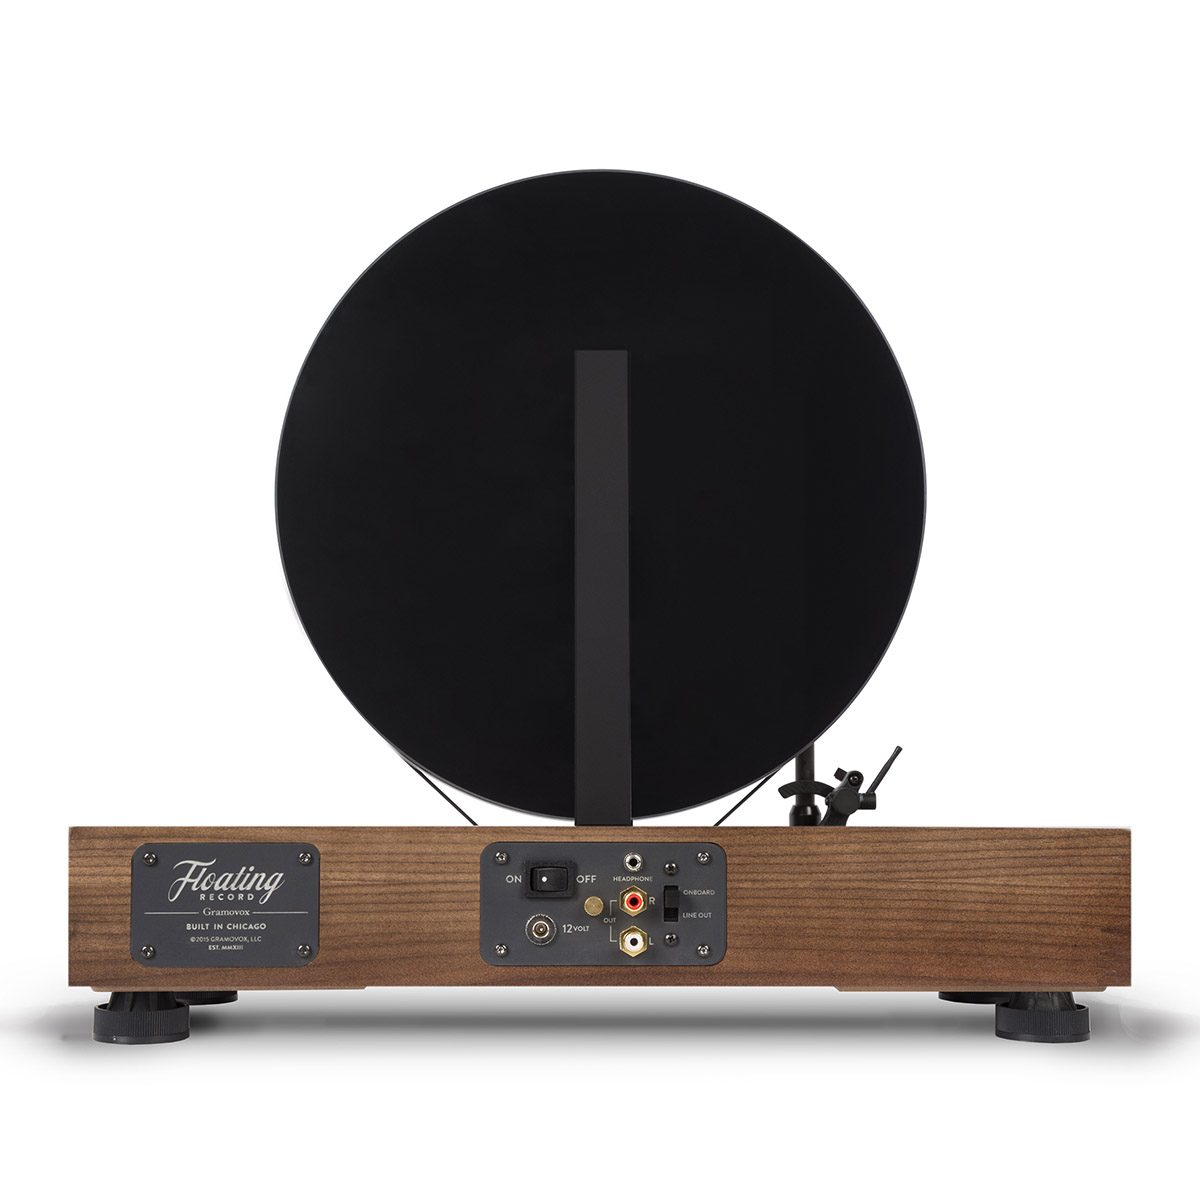 Floating record player by Gramovox - 06